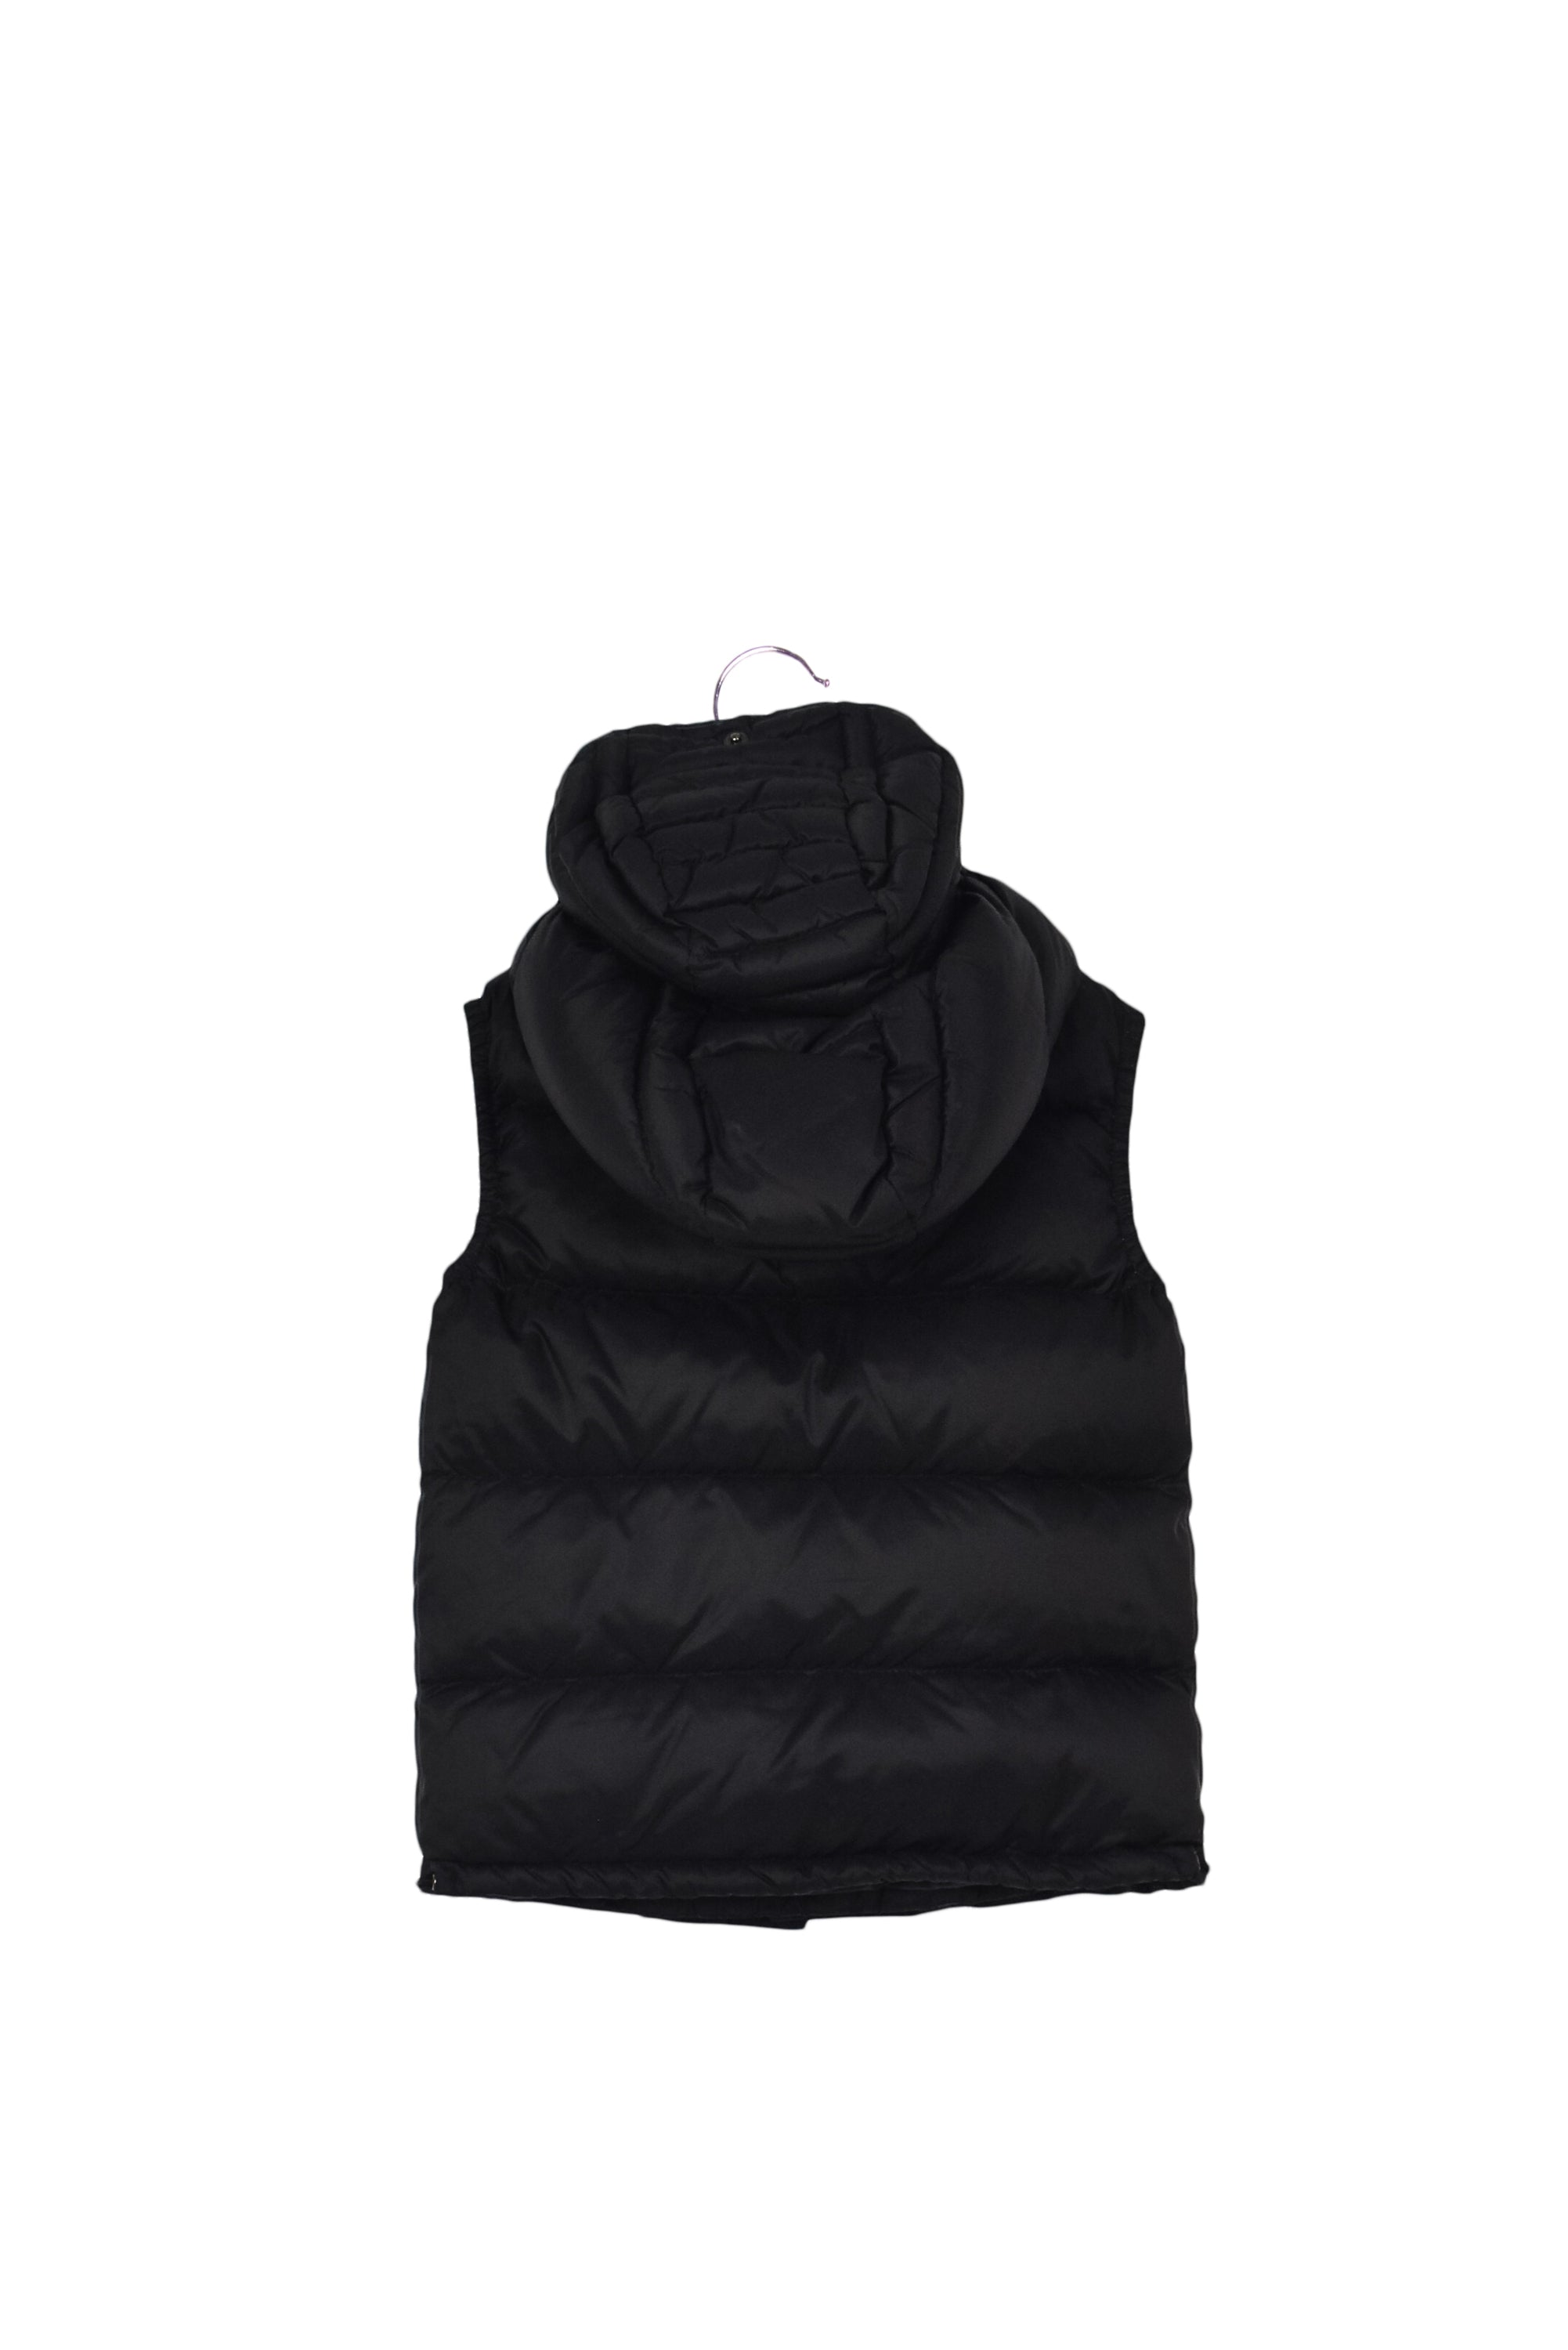 10040949B Burberry Kids~Puffer Vest 4T at Retykle